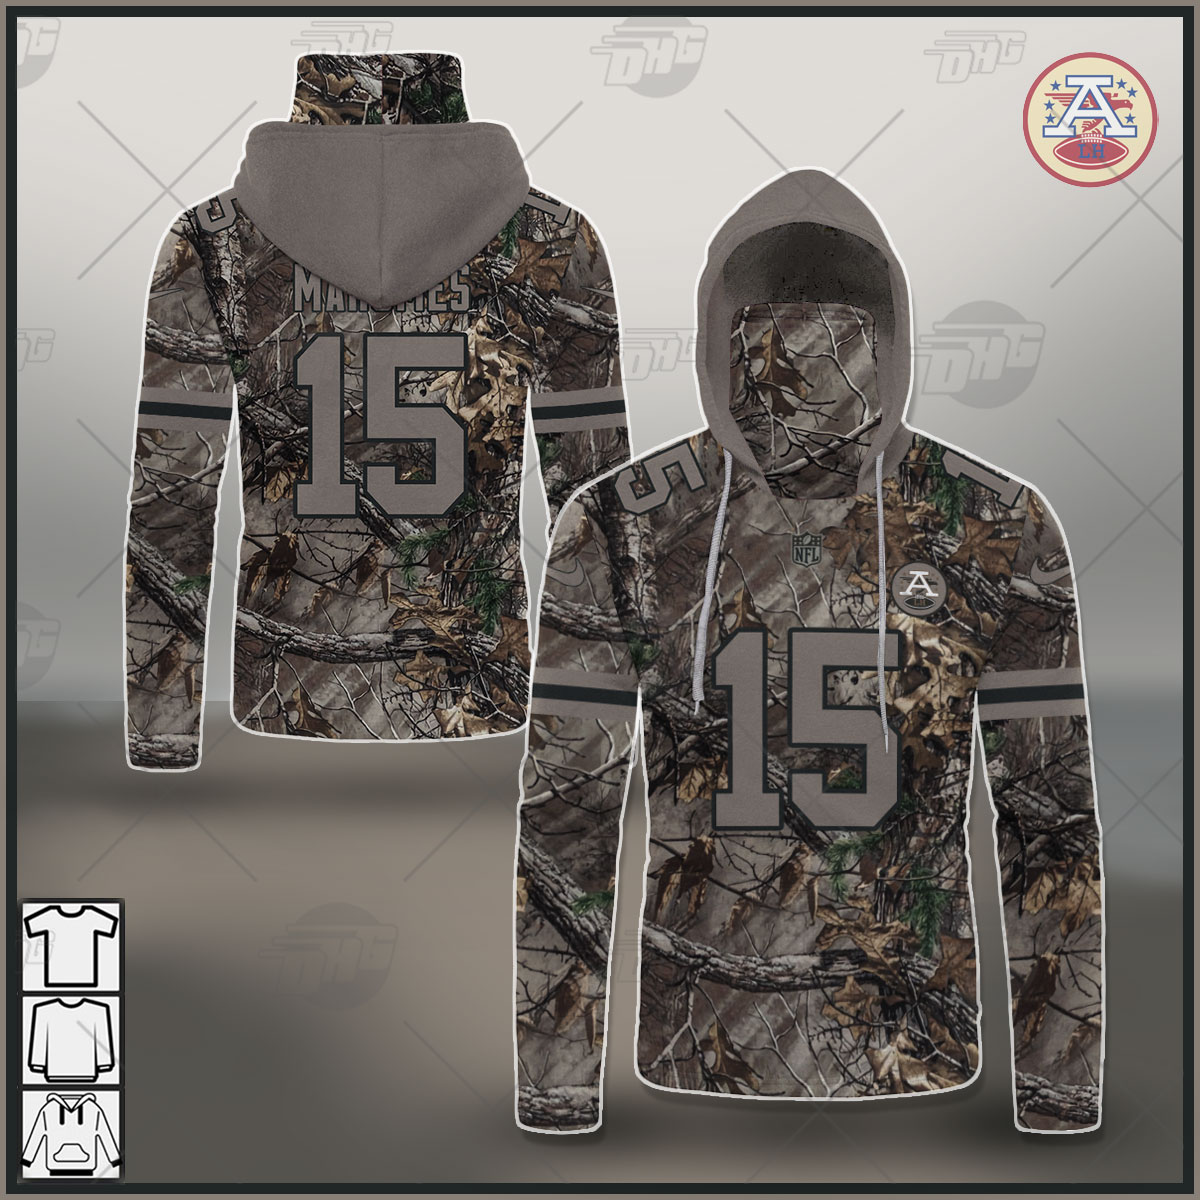 NFL Kansas City Chiefs Camo Real Tree Patrick Mahomes Jersey Clothes Hunting Gear Personalized